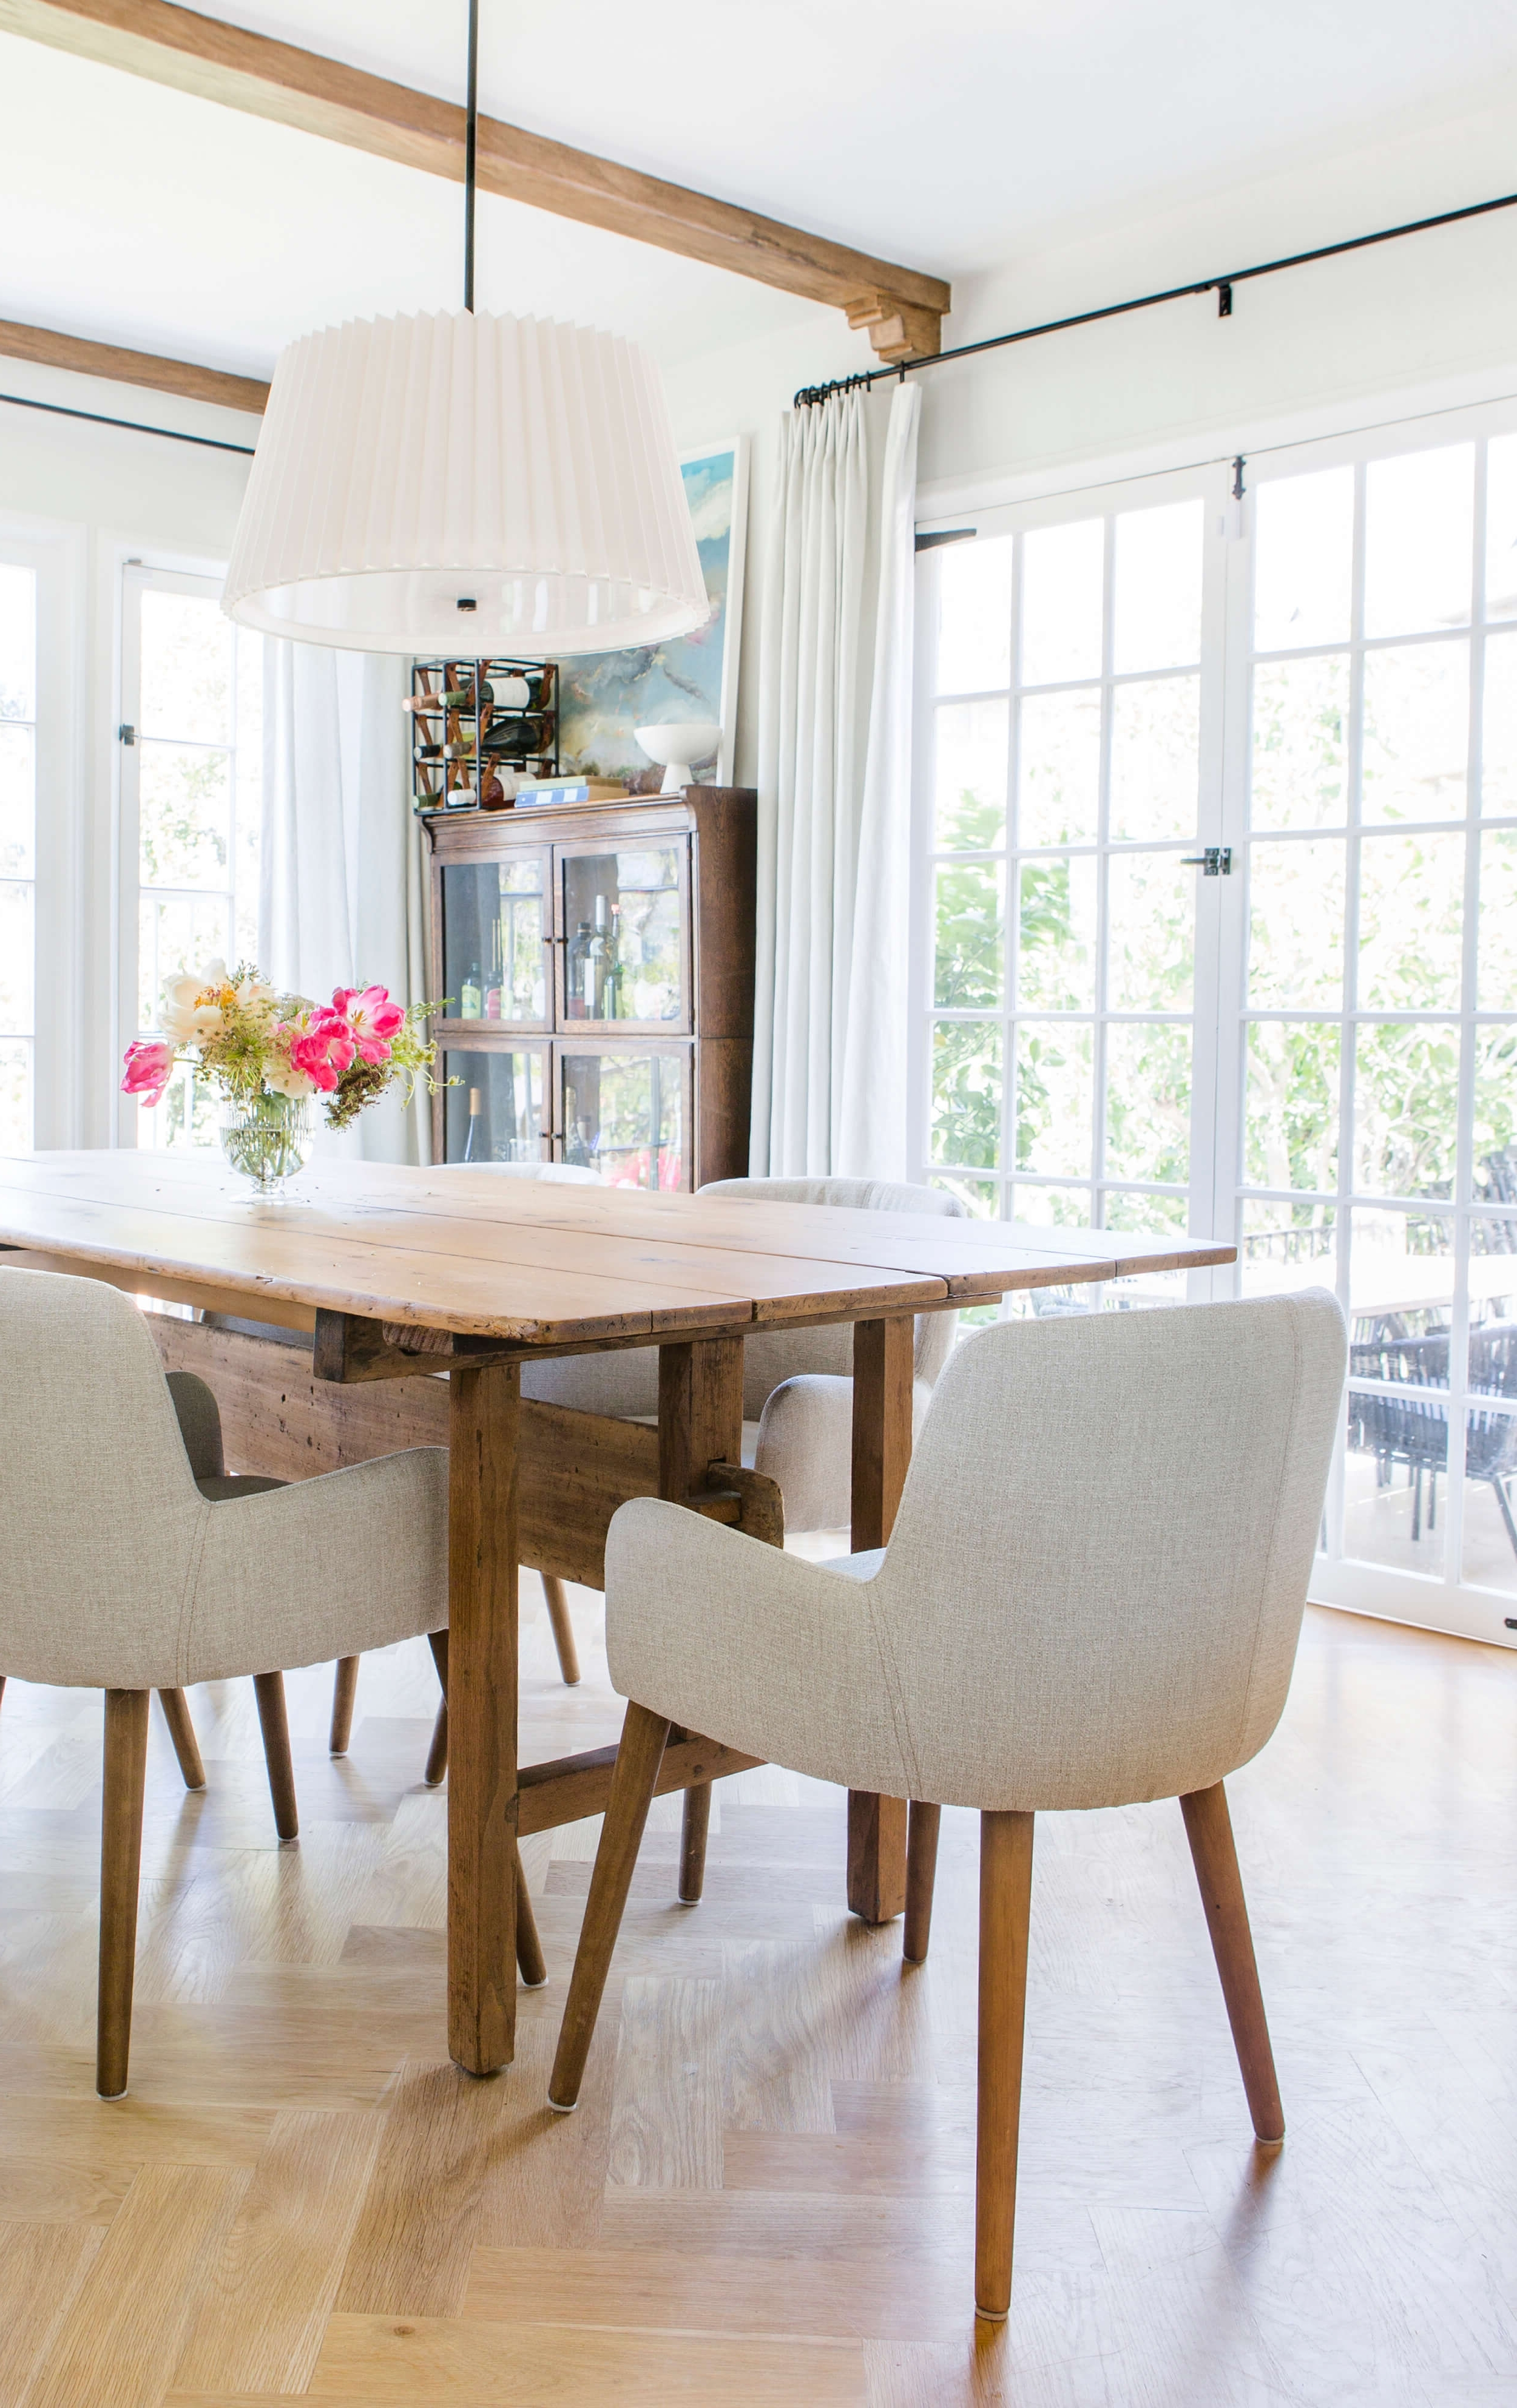 Trendy An Update On My Dining Room – Emily Henderson With Regard To Market 6 Piece Dining Sets With Host And Side Chairs (View 17 of 25)